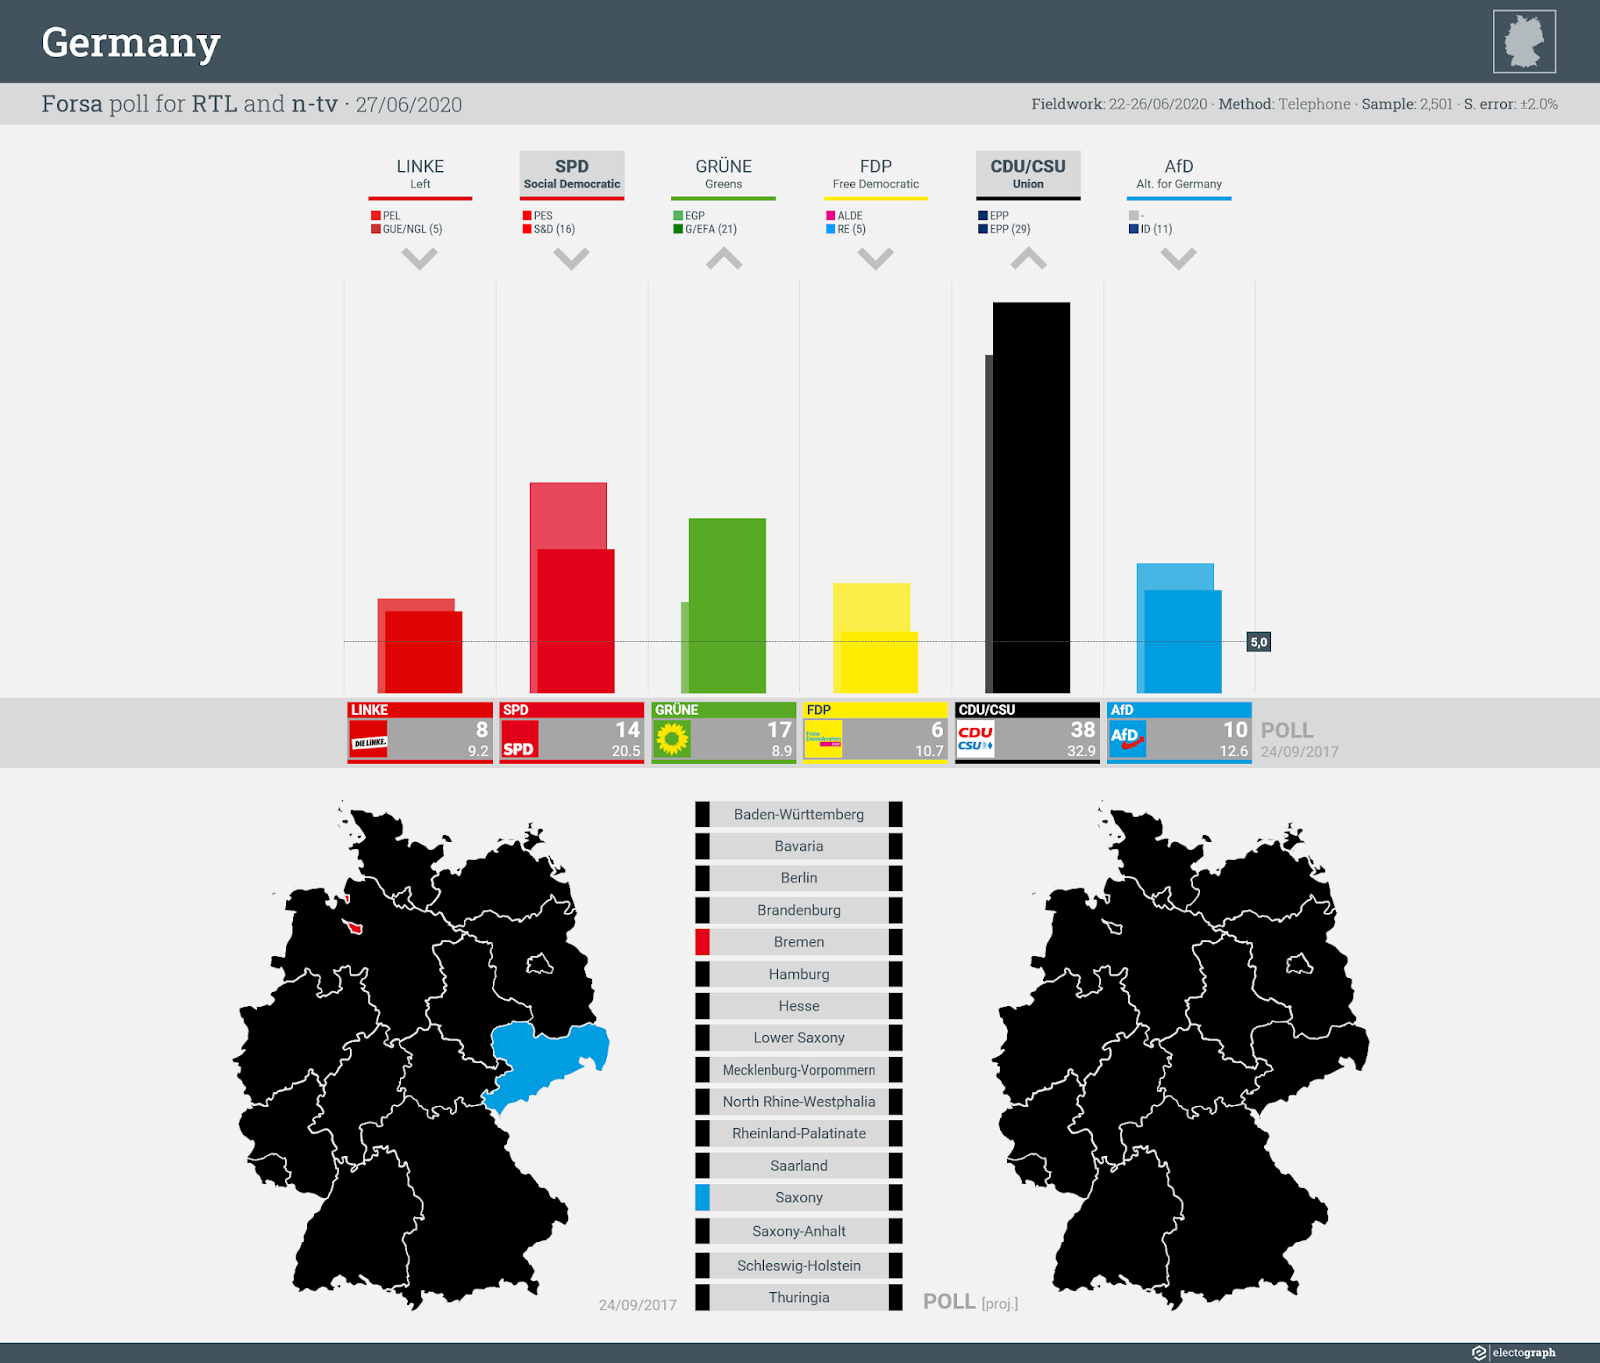 GERMANY: Forsa poll chart for RTL and n-tv, 27 June 2020